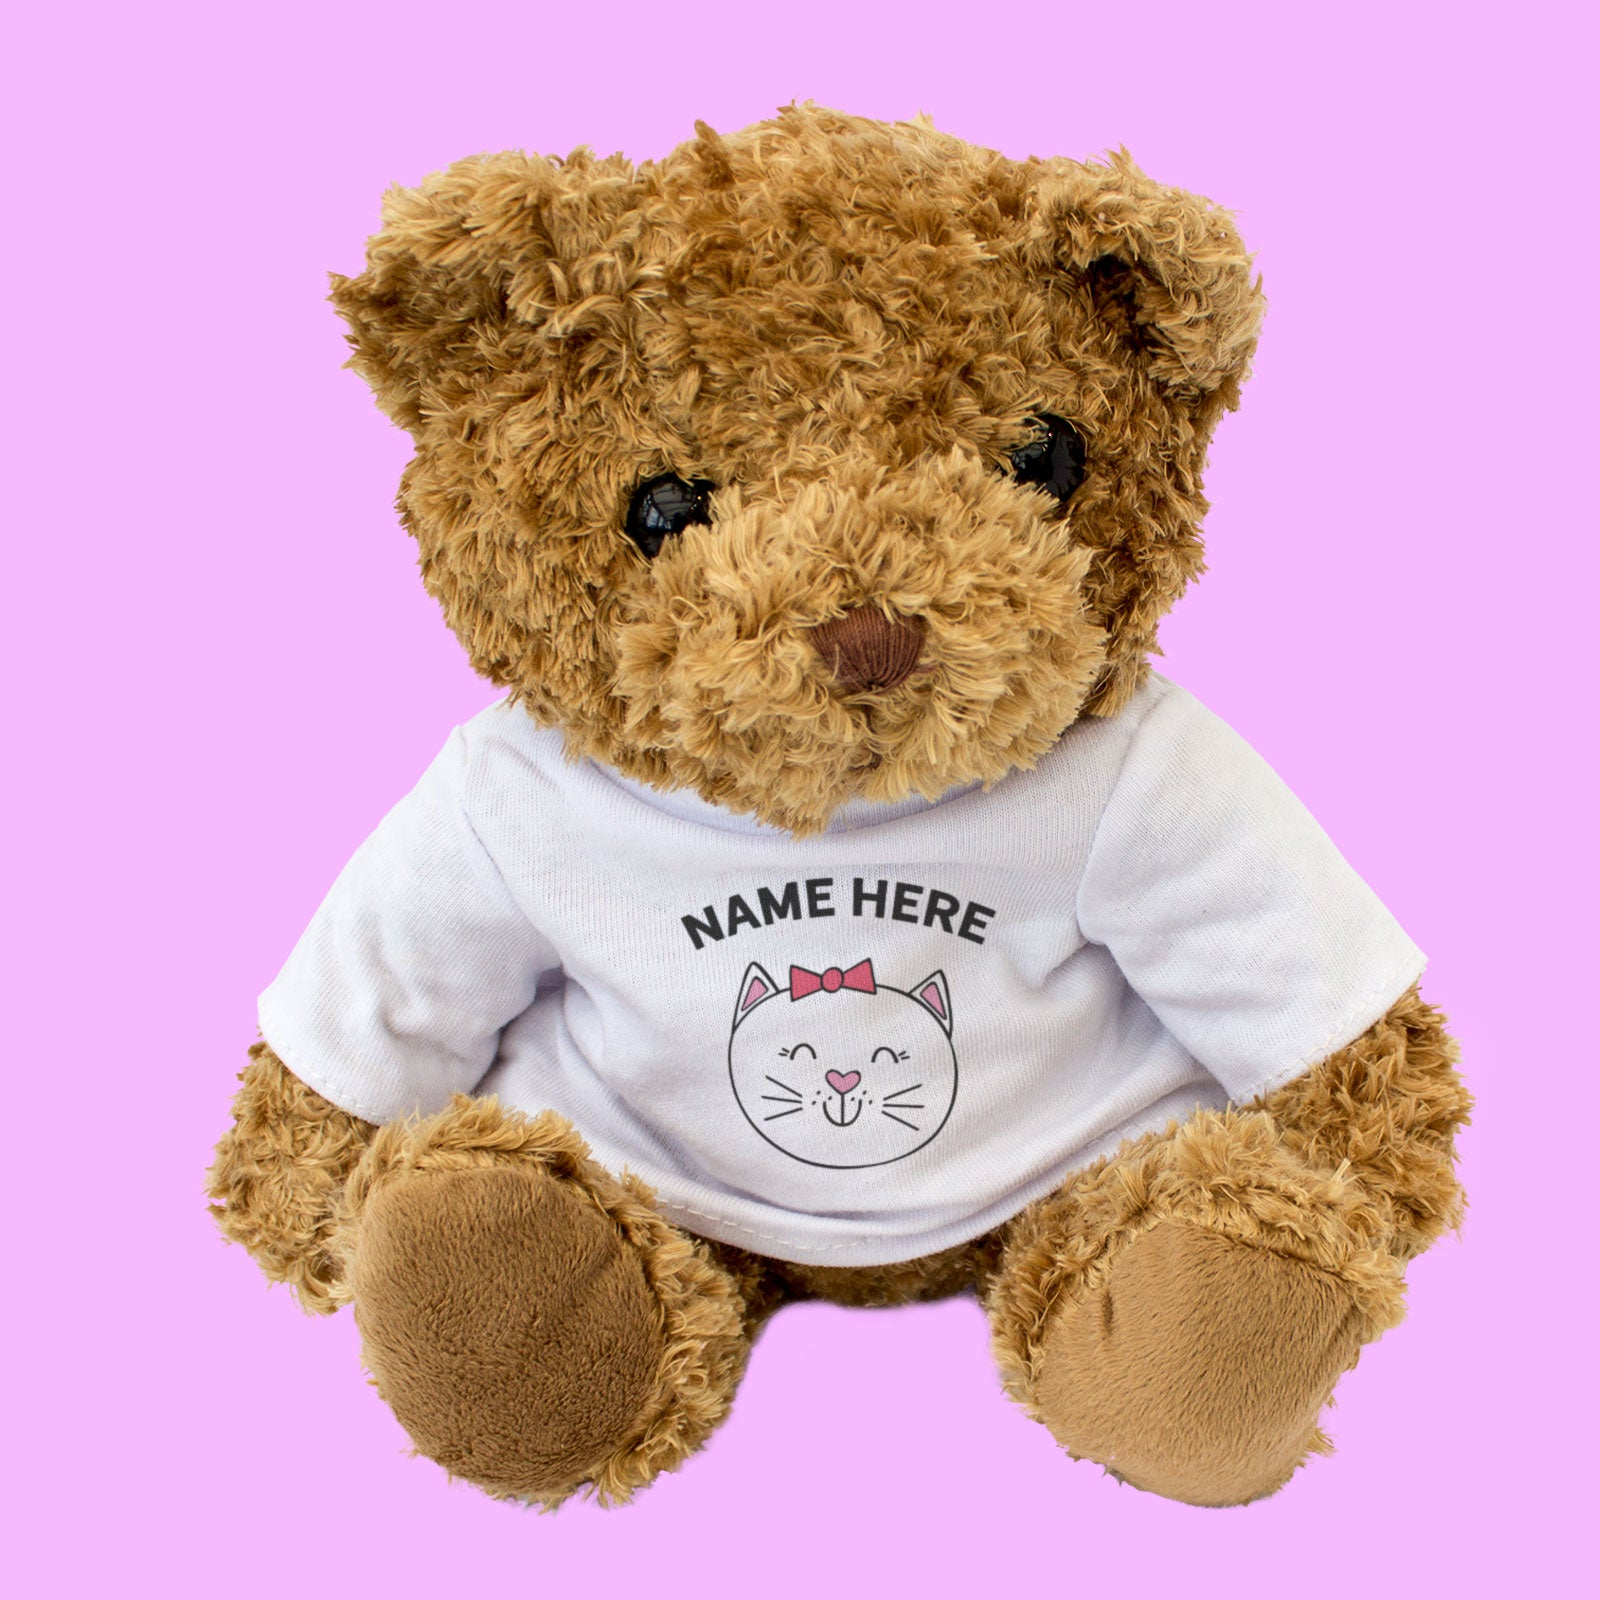 Teddy Bear Personalised Name - Cute Cat